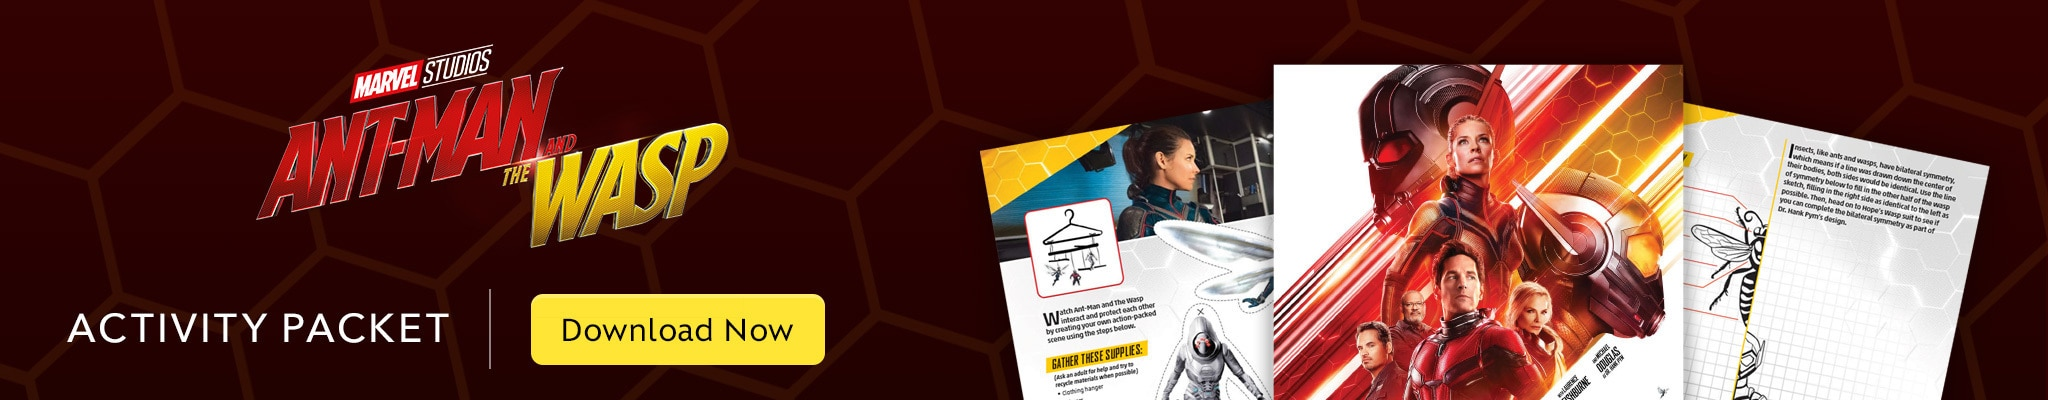 Ant-man and the Wasp activity packet.  Download now.